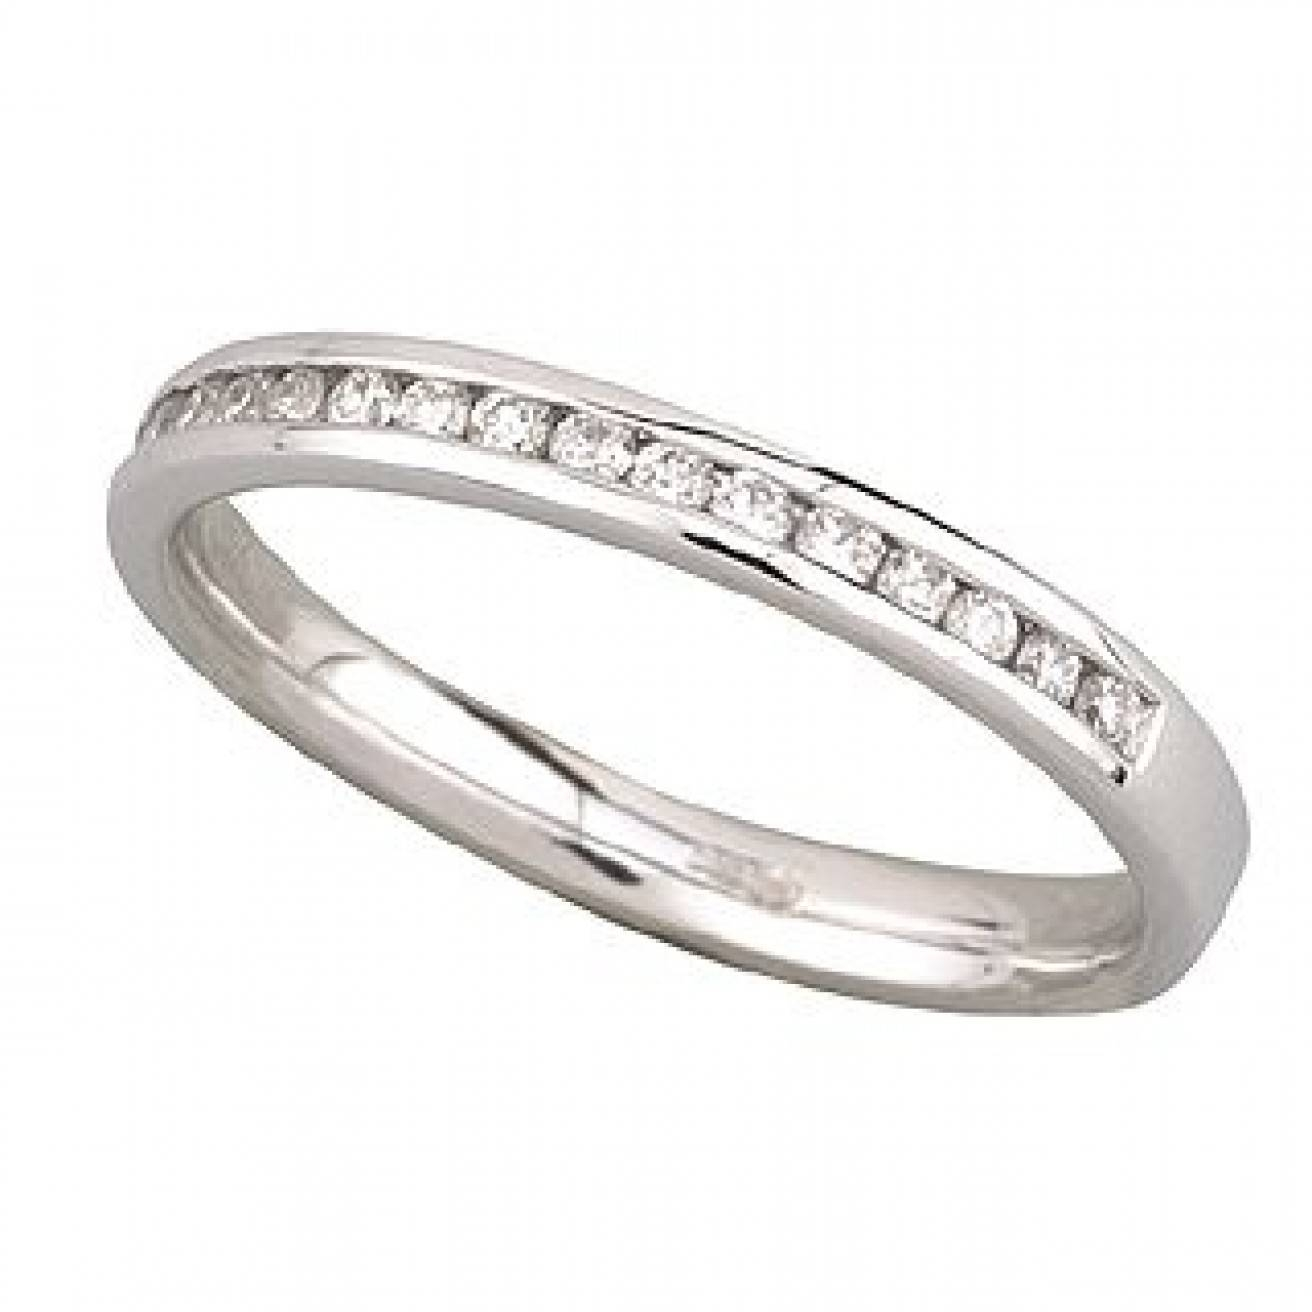 Buy White Gold Wedding Rings Online – Fraser Hart For 18K White Gold Wedding Rings (View 8 of 15)